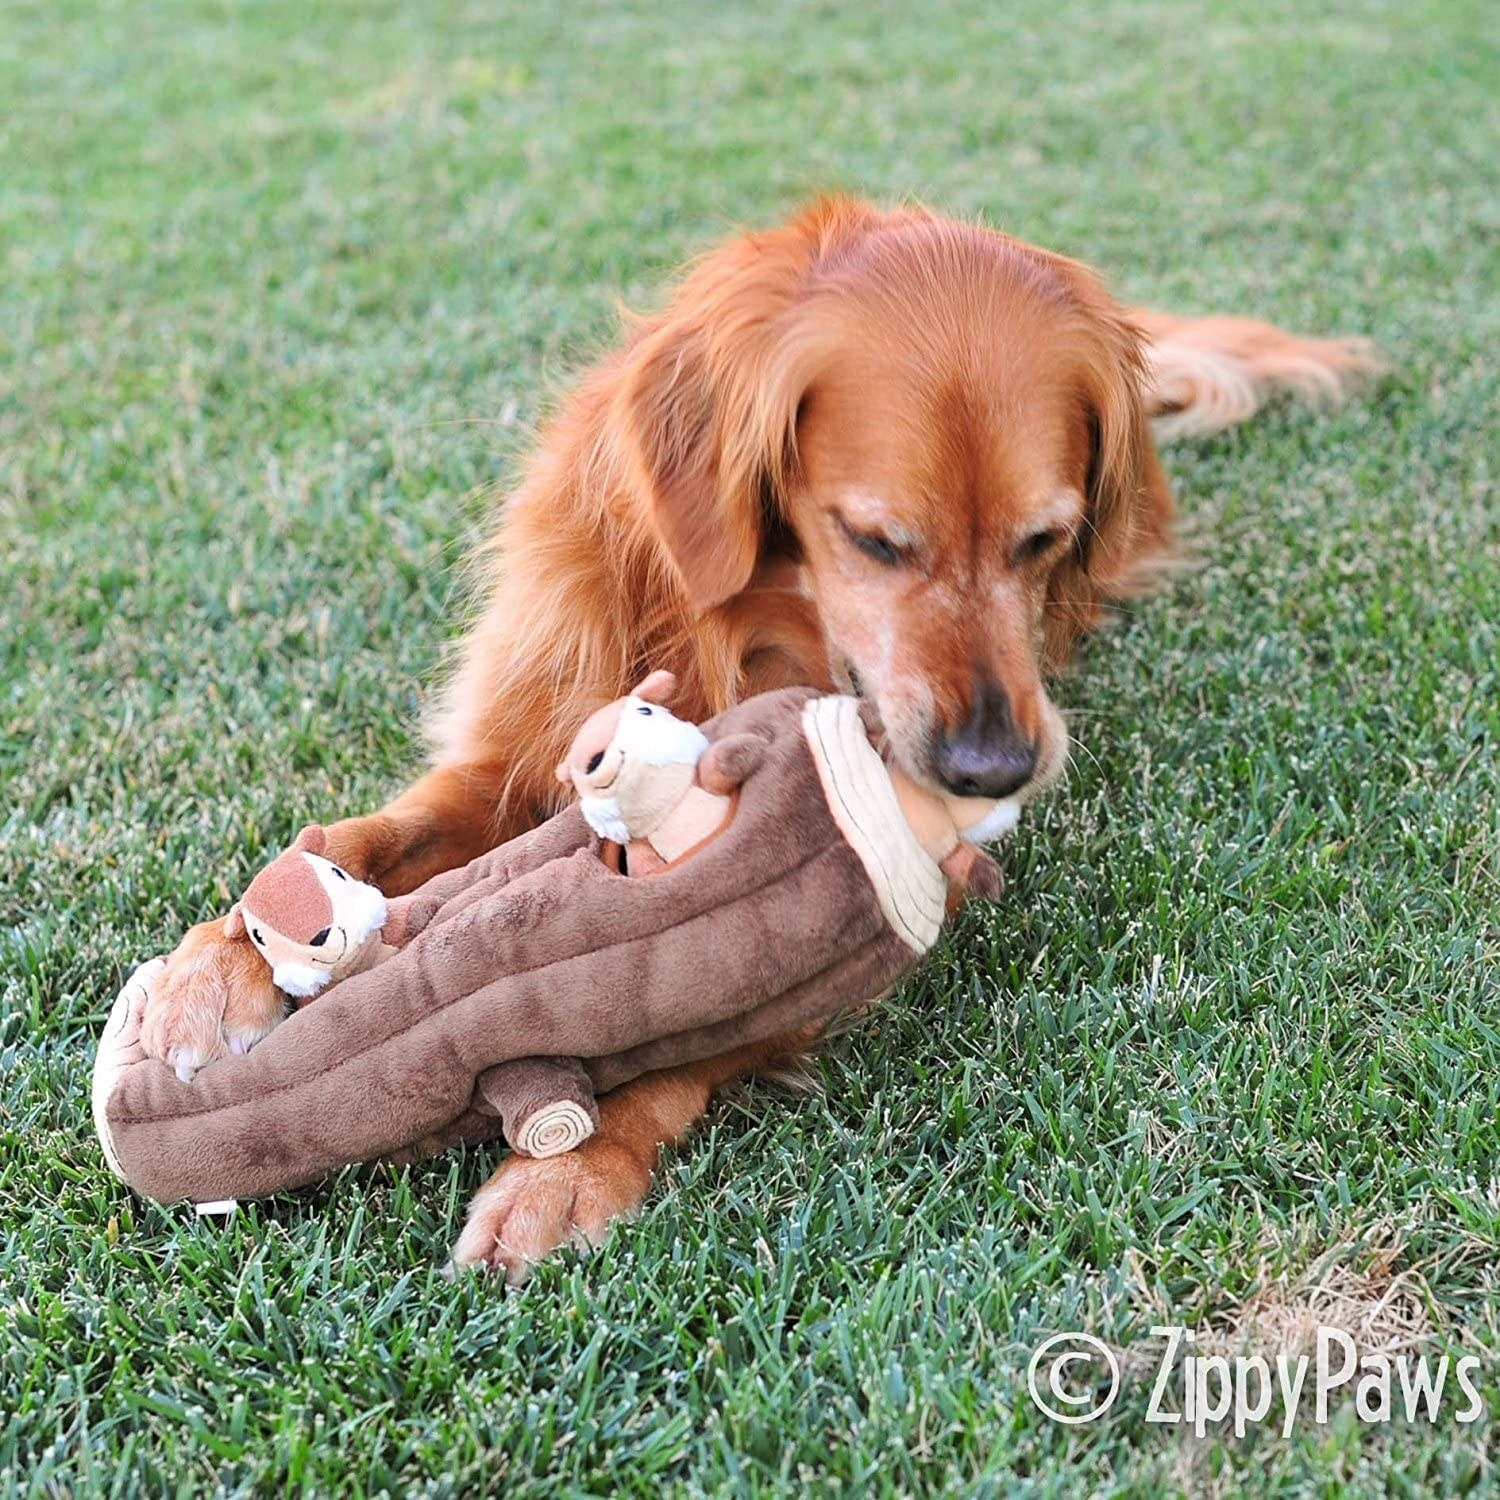 Dog chewing on log-shaped plush toy with included squirrels